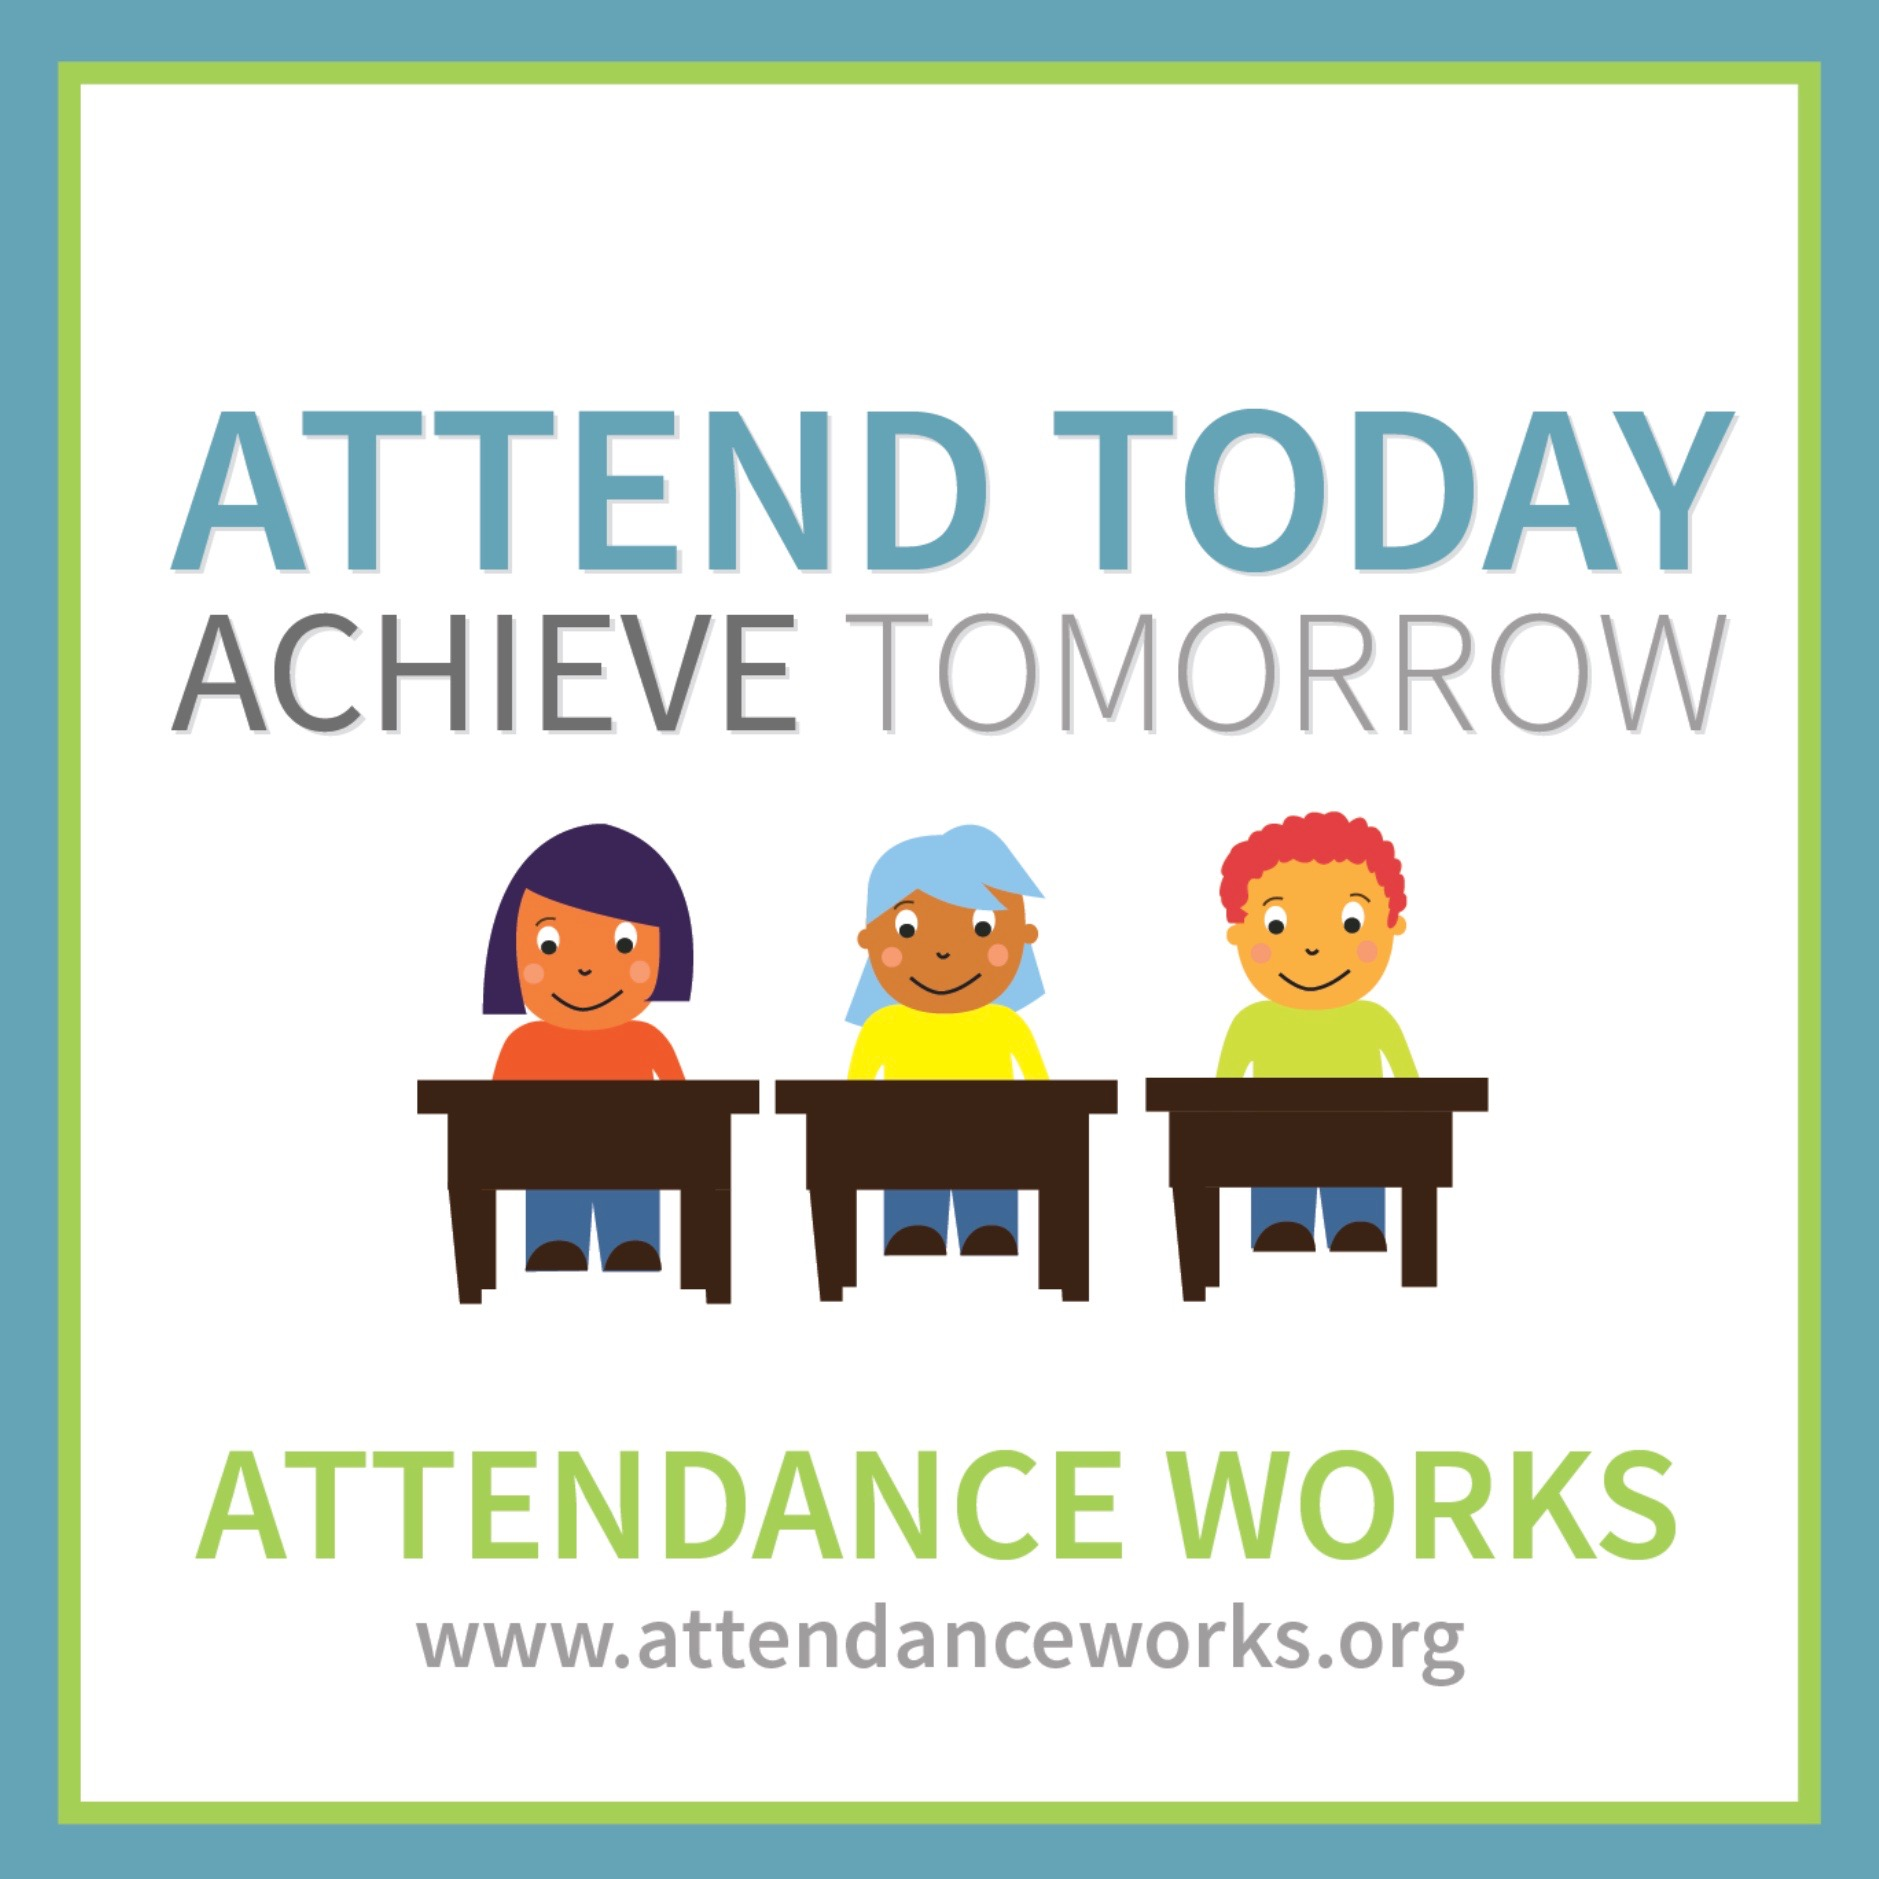 An image promoting school attendance.